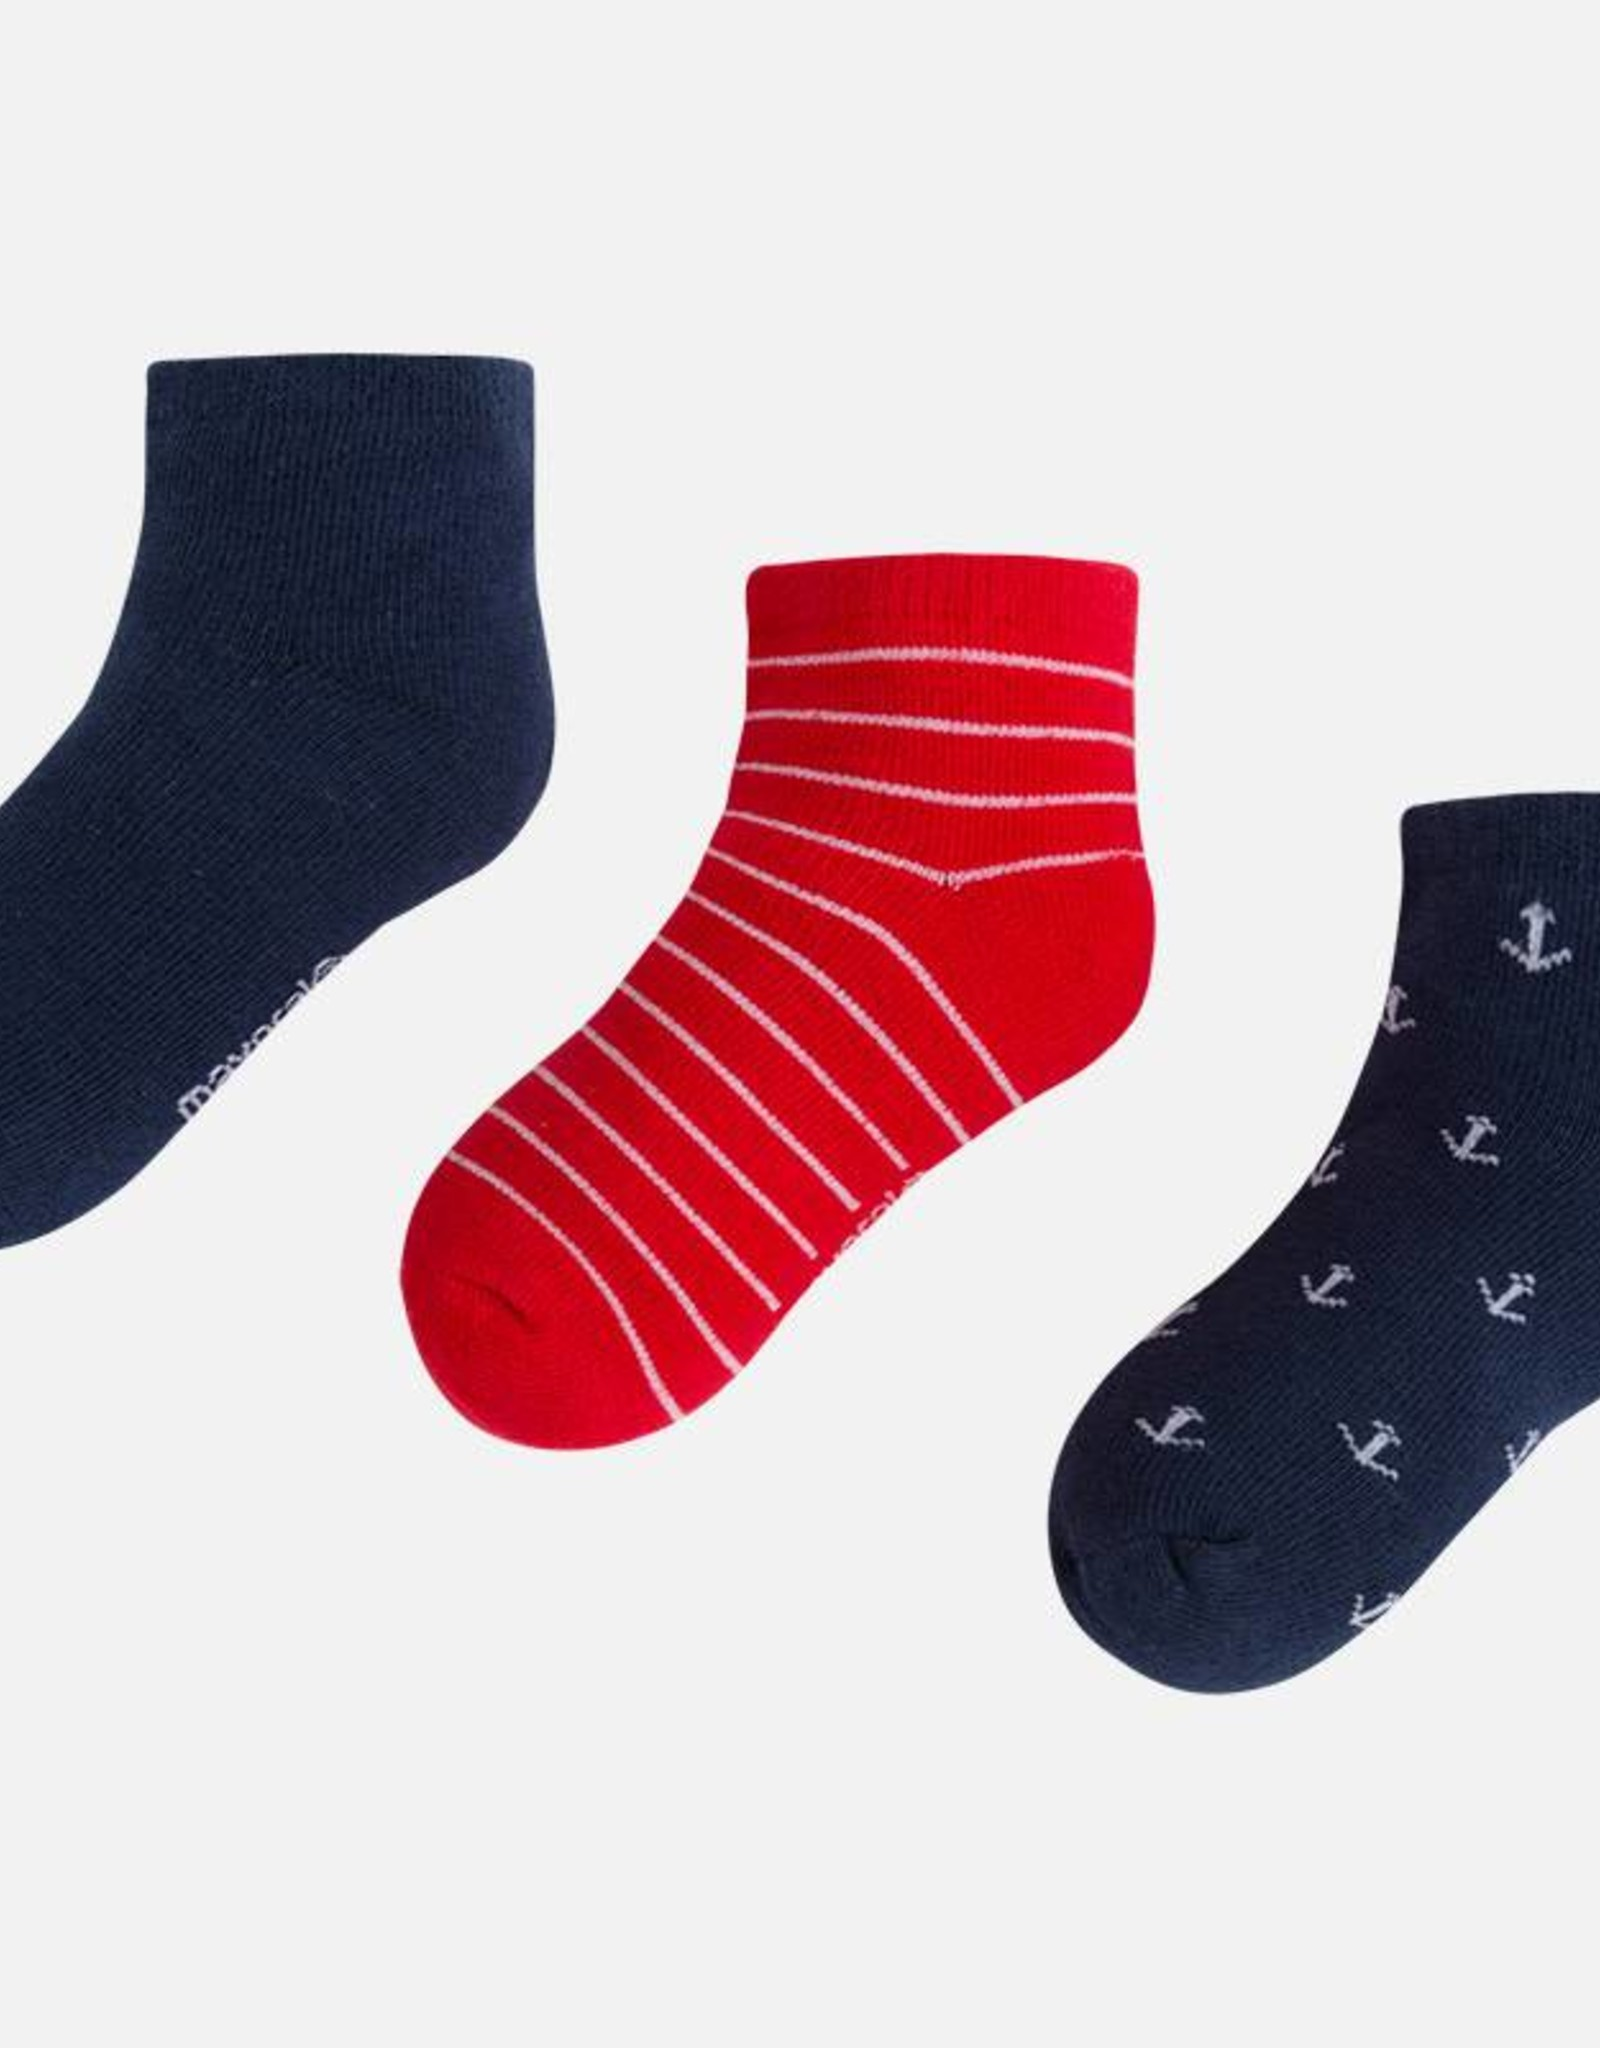 Mayoral Set of 3 socks, 3 colors